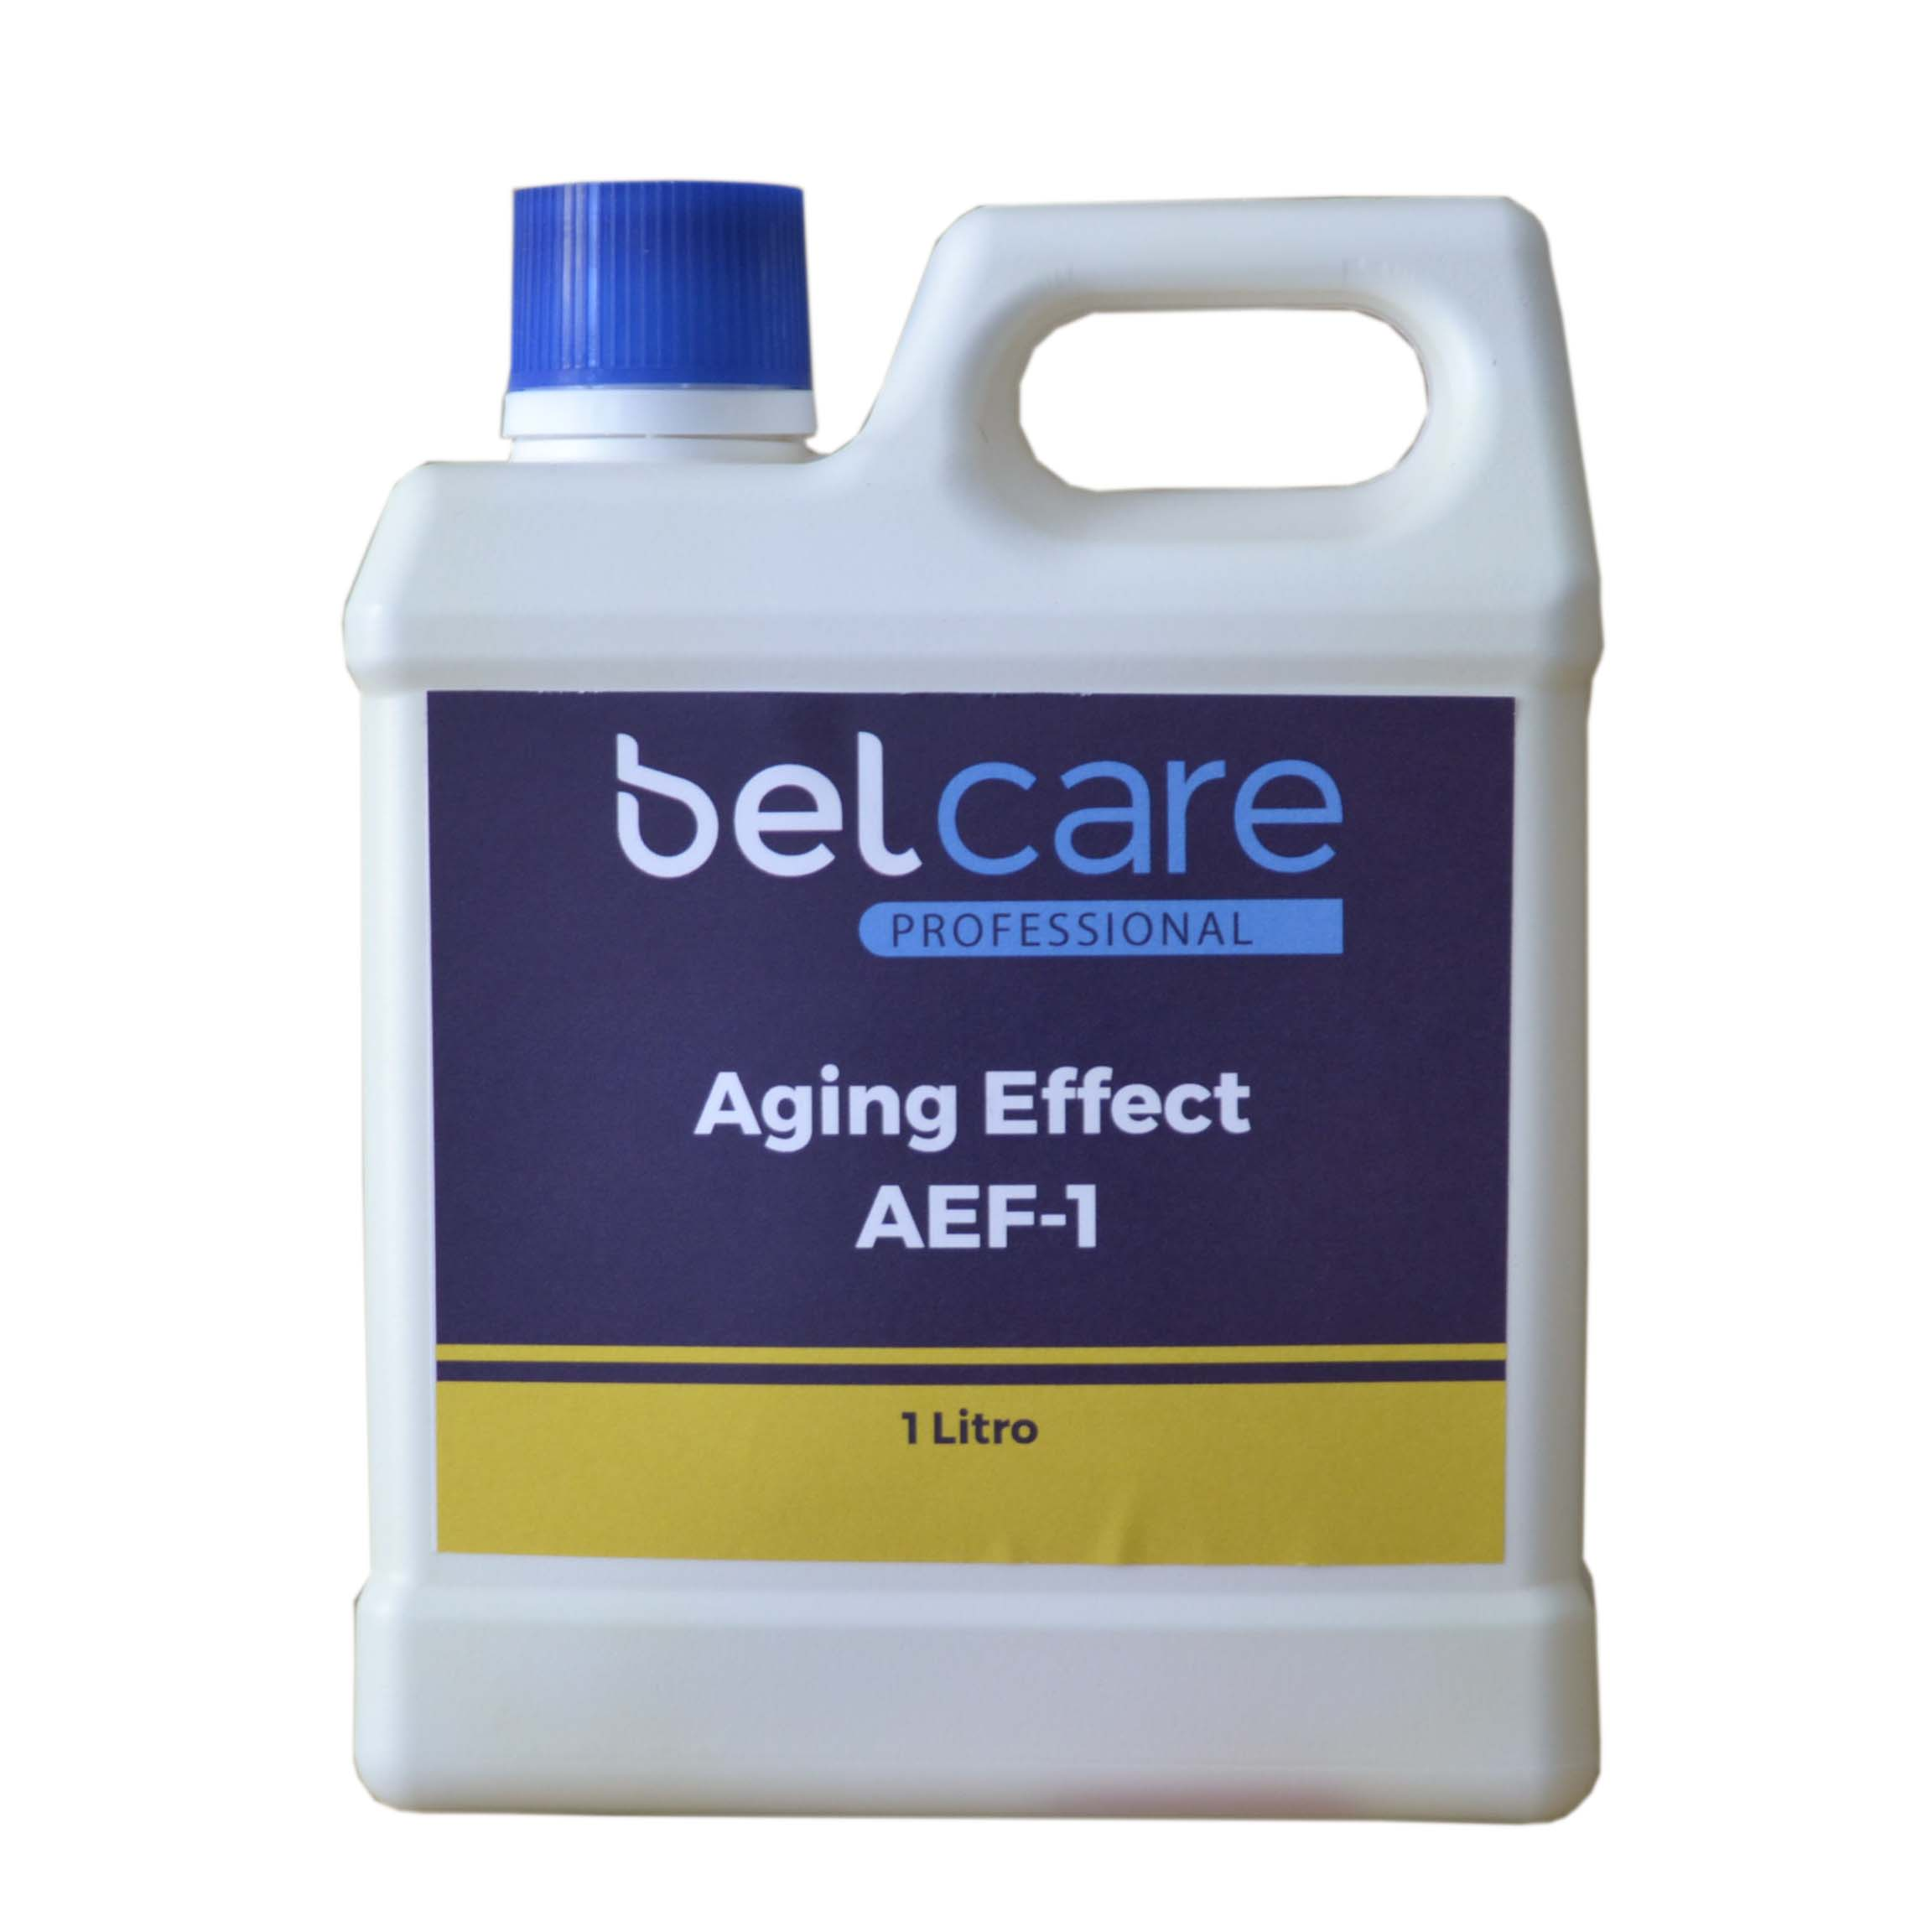 AGING EFFECT FRONTAL